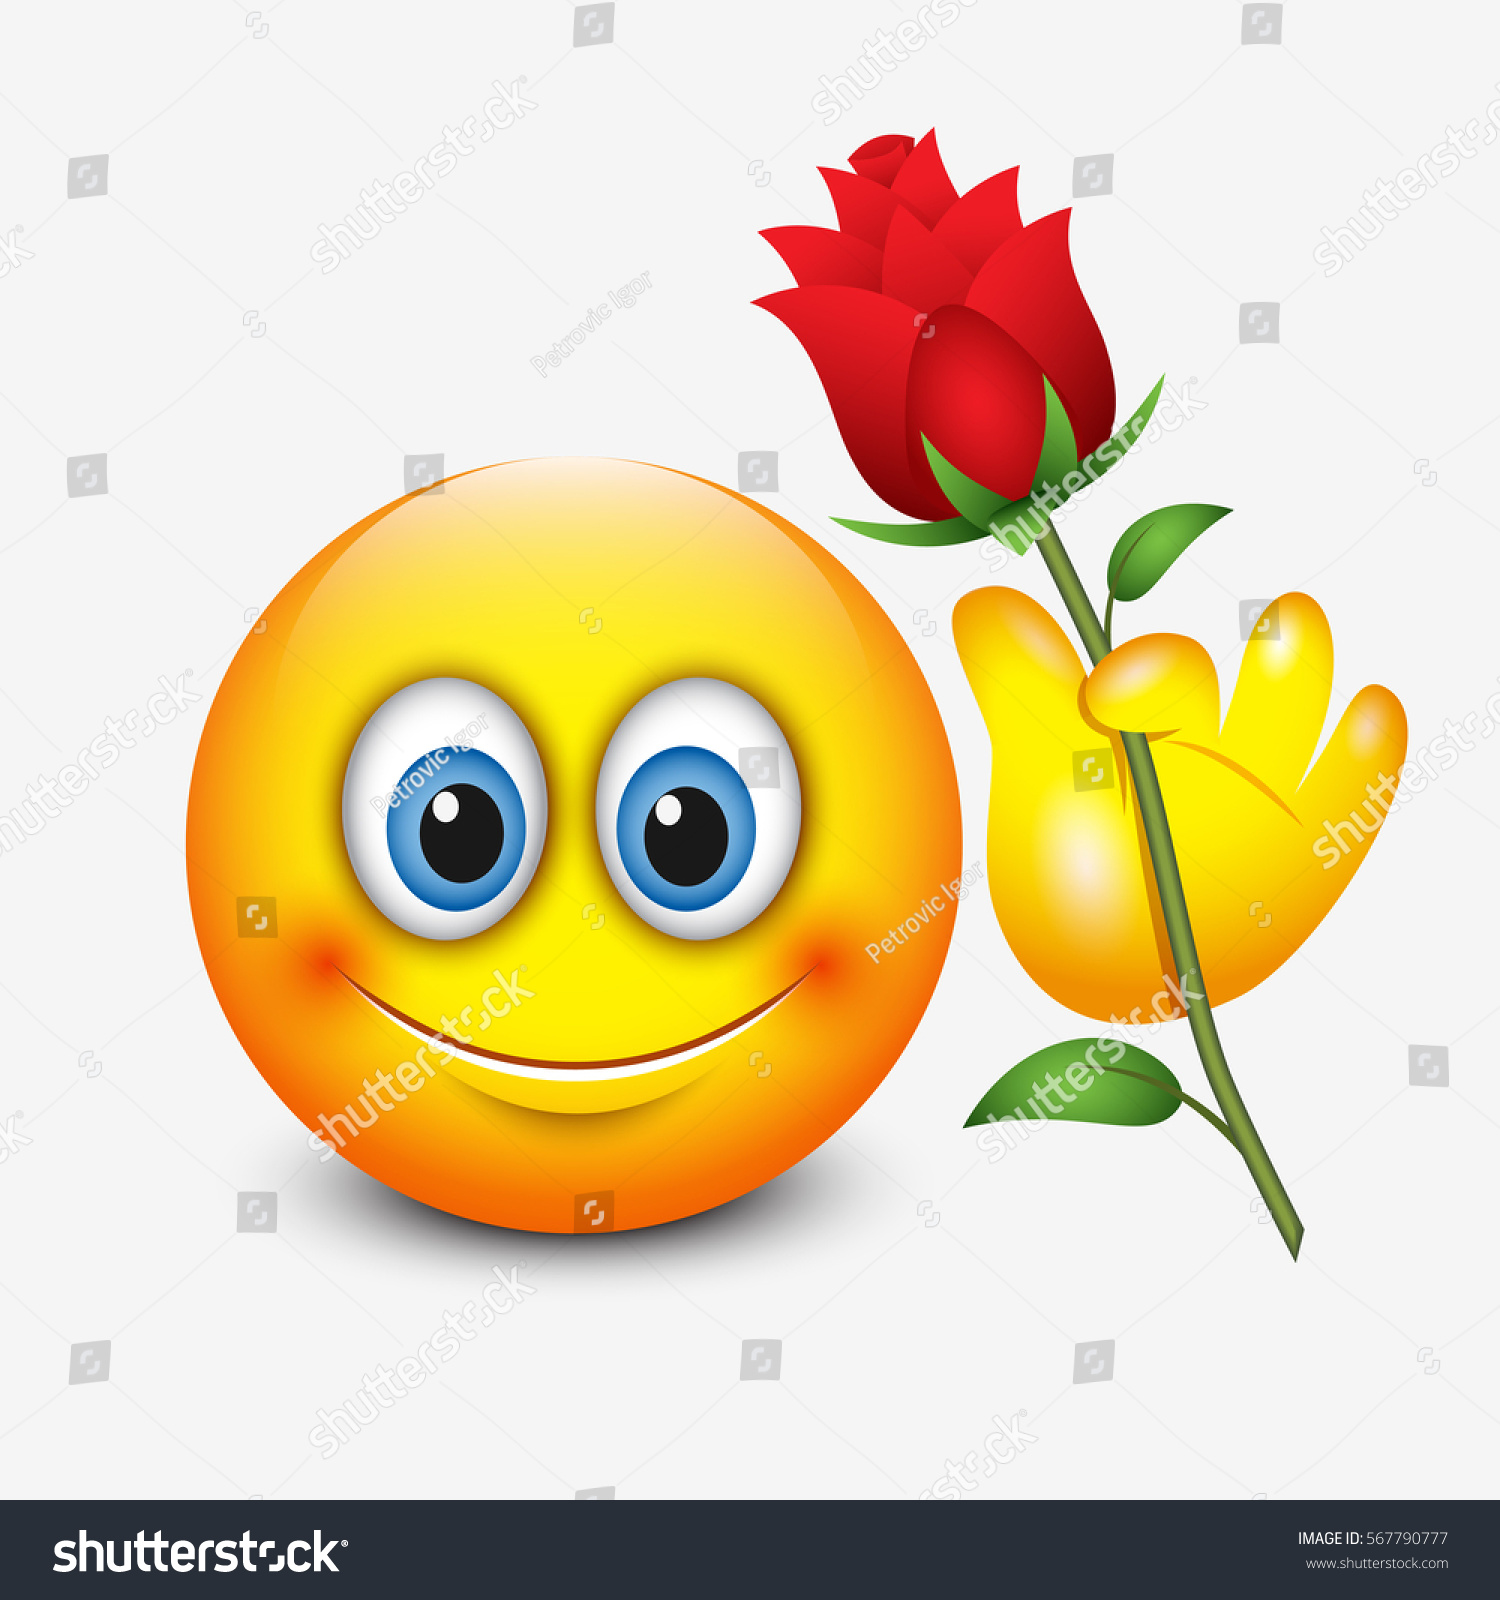 Cute Emoticon Holding Red Rose Saint Stock Vector Shutterstock